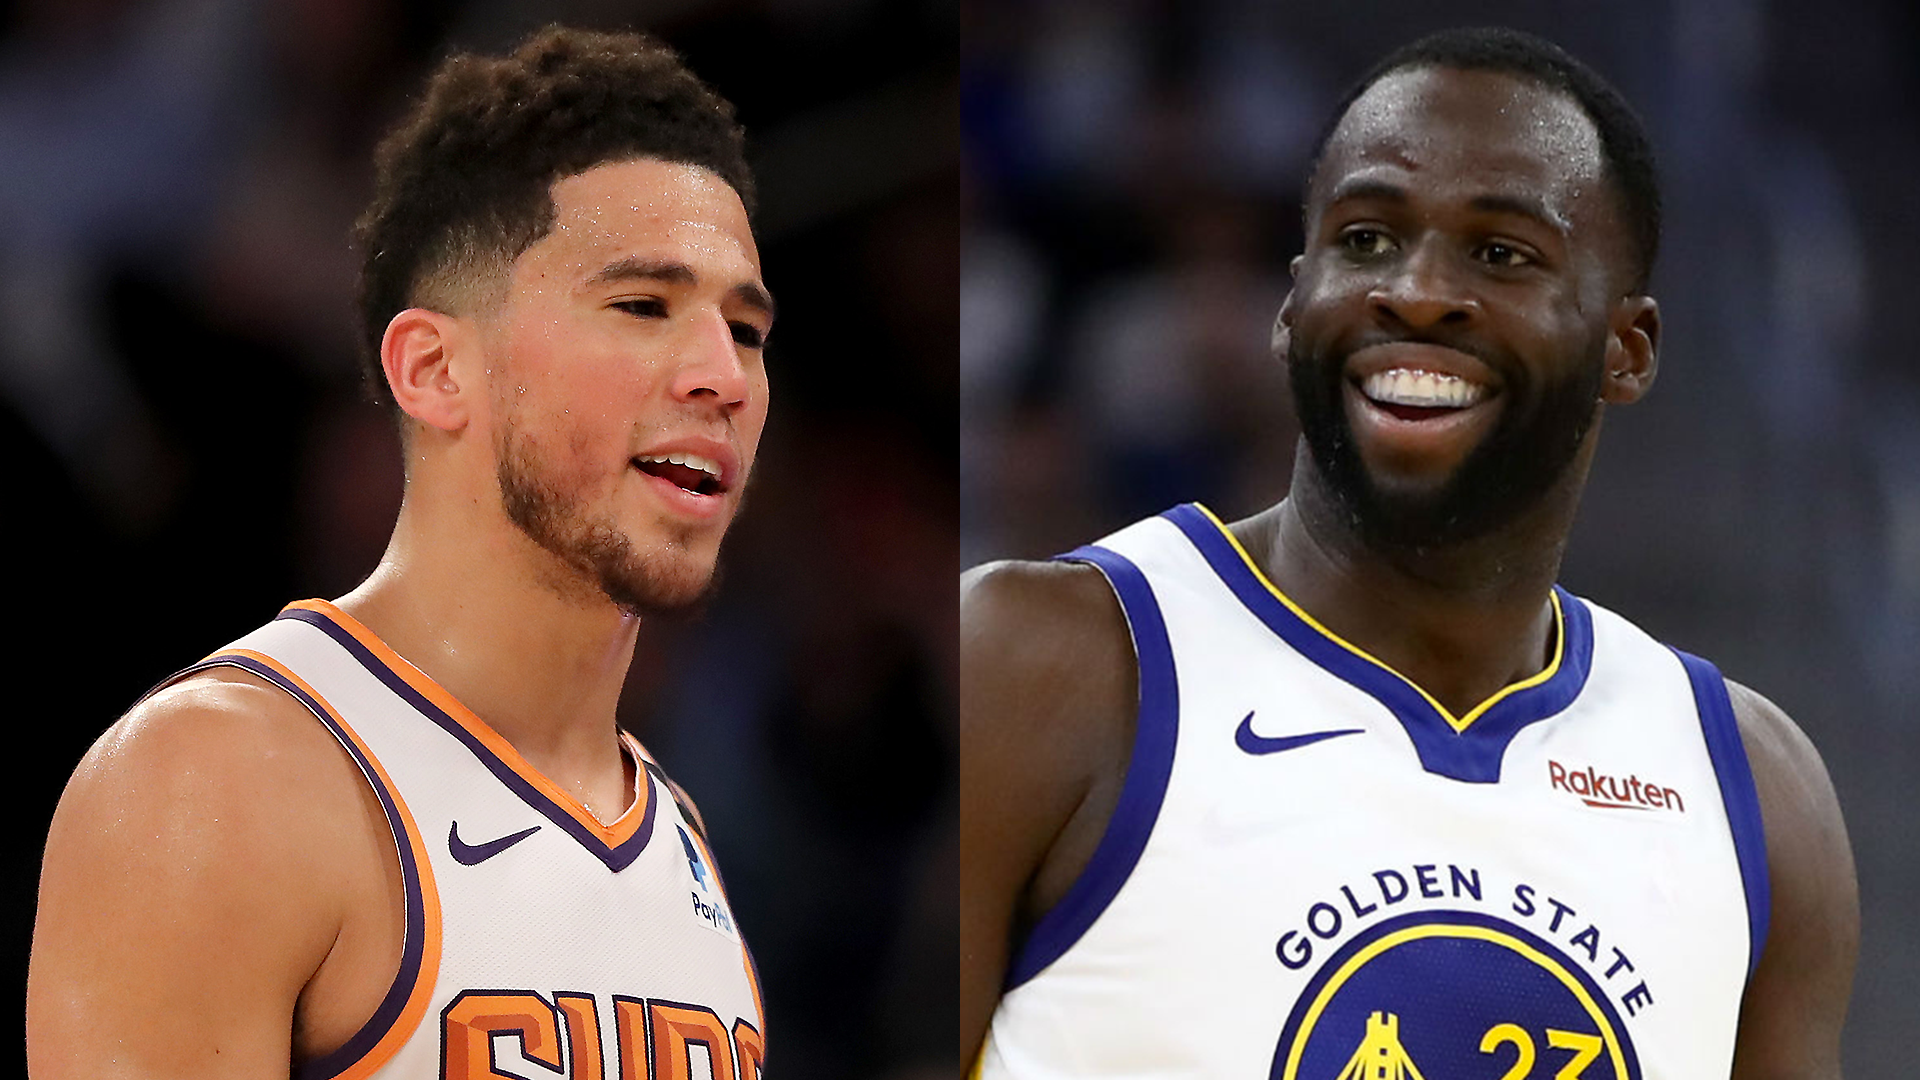 Draymond Green admits he may have tampered to get Devin Booker off the Suns 1